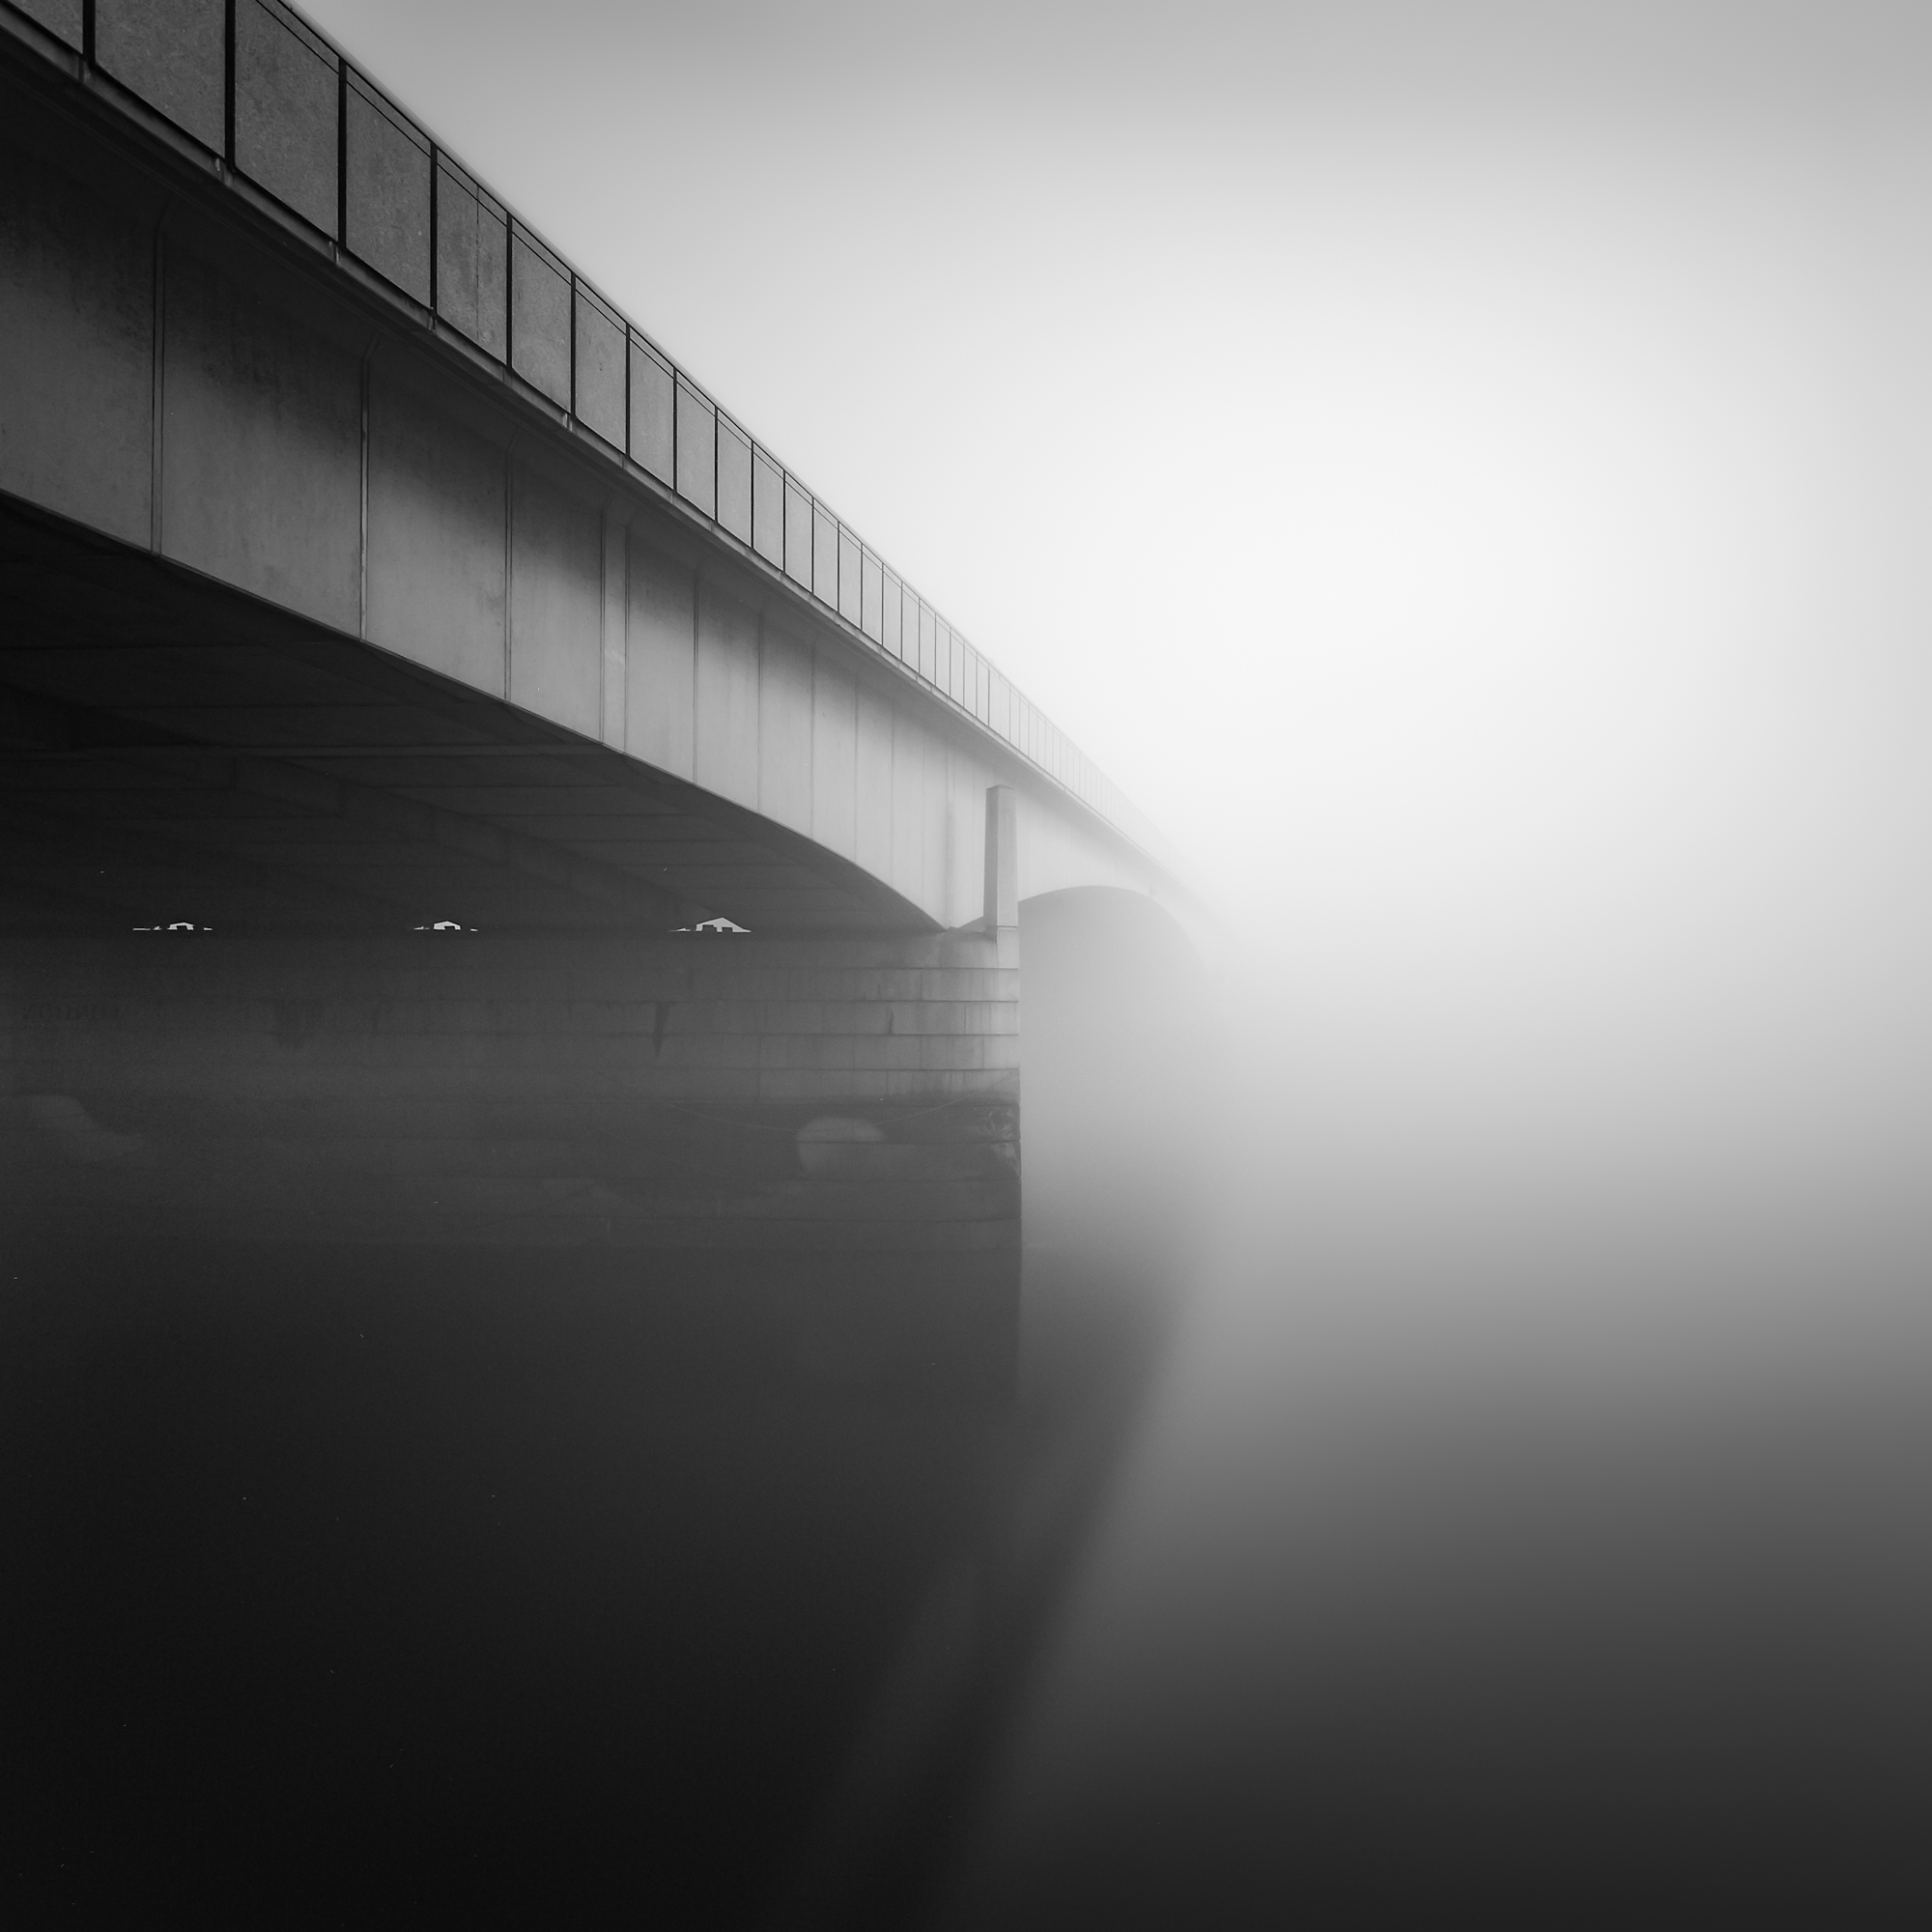 London bridge in the fog